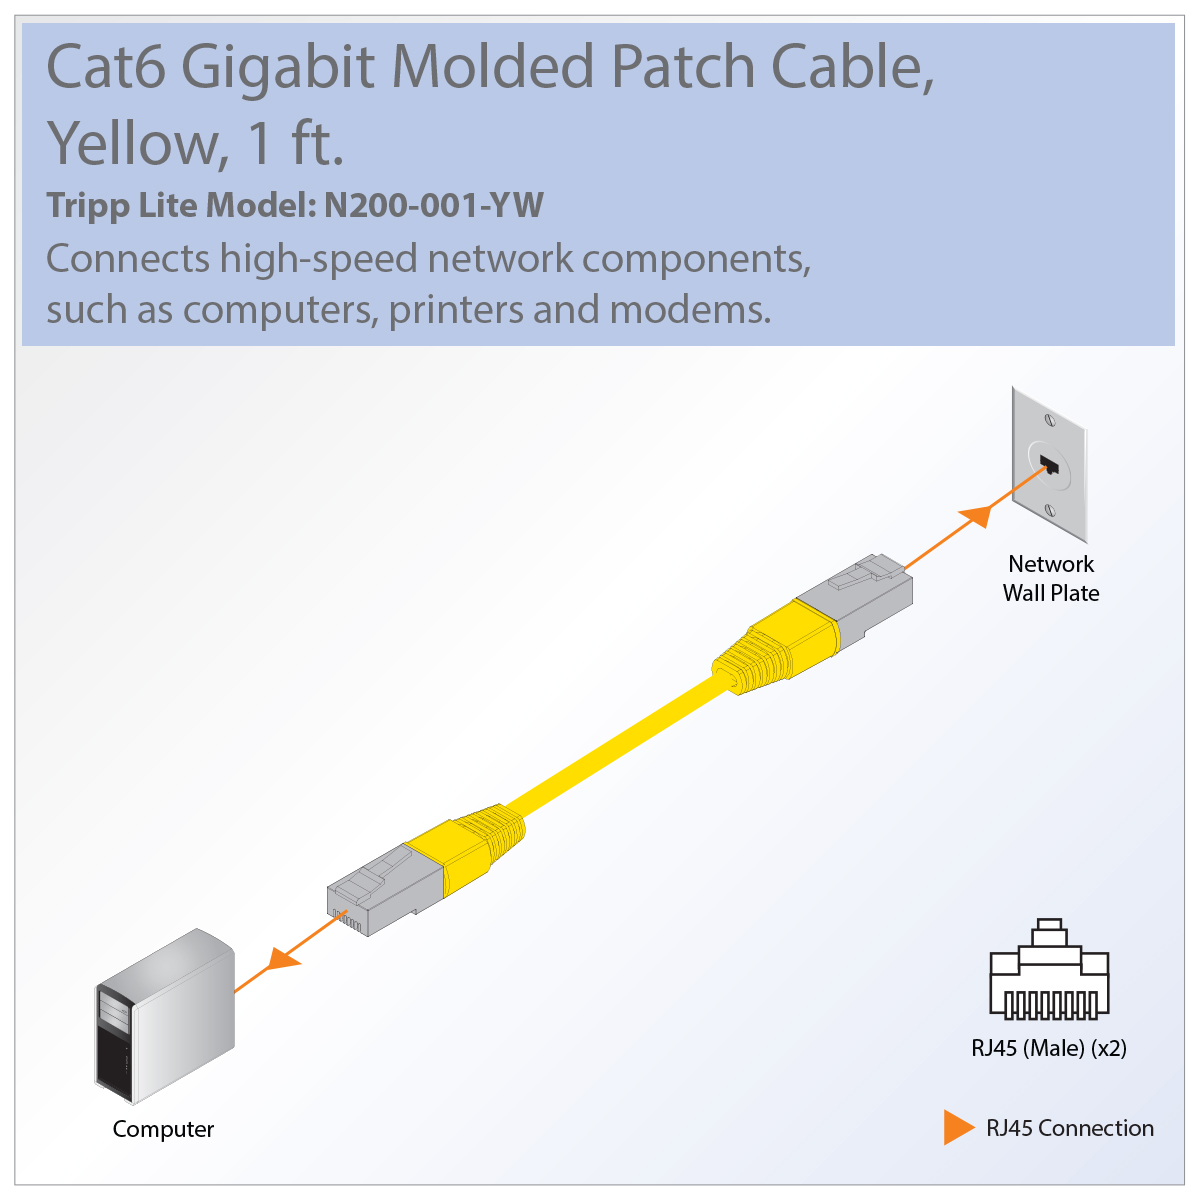 Tripp Lite Patch Cable Cat6 Utp Molded 30cm Yellow N200 Home Network And Networking Computing Diagram Great For Connecting Components In Bandwidth Heavy Office Networks